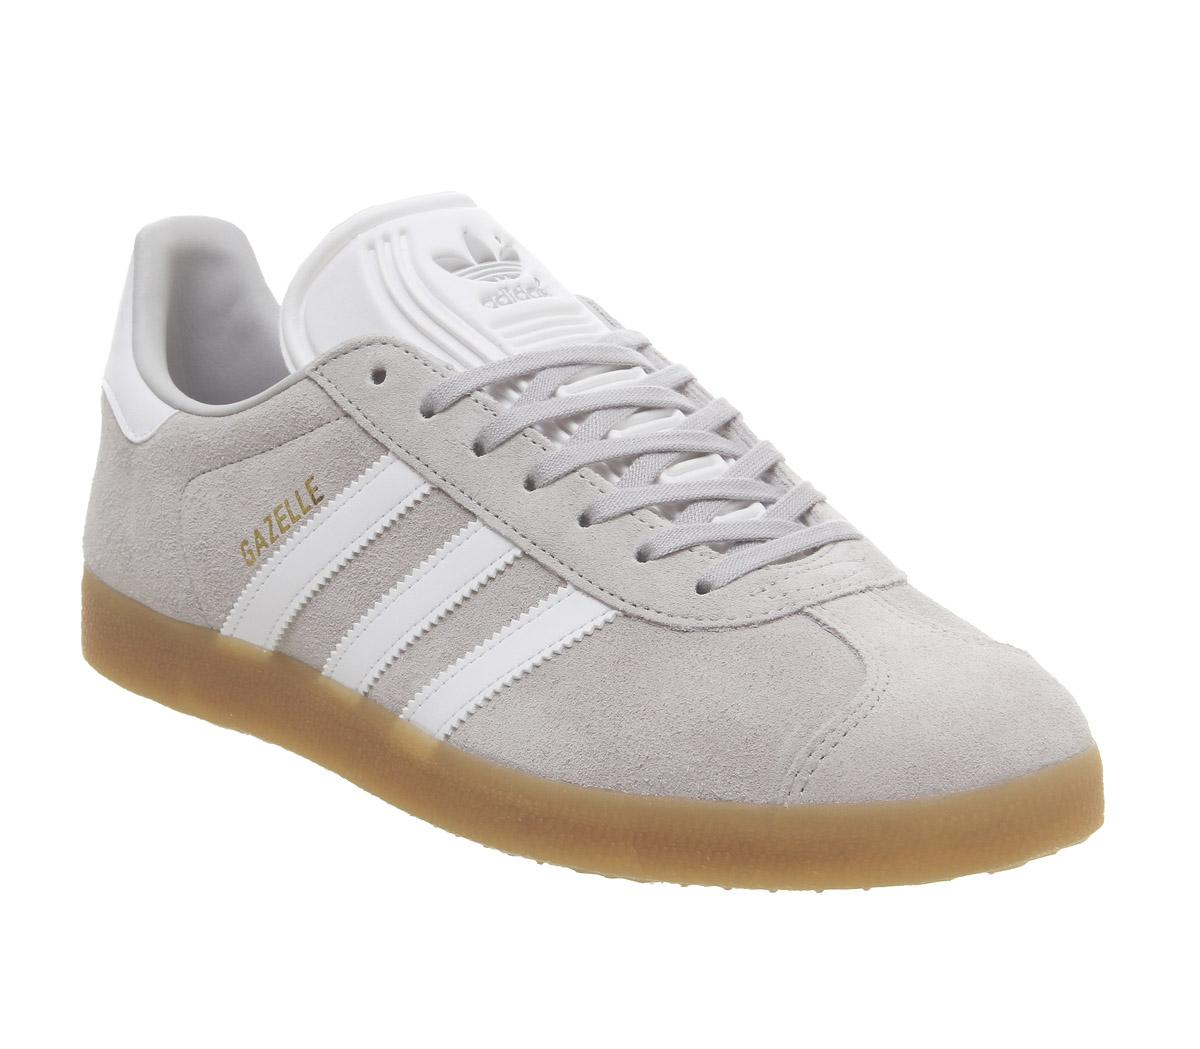 Circular pastel Banquete  adidas Gazelle Trainers Grey Two White Gum - His trainers